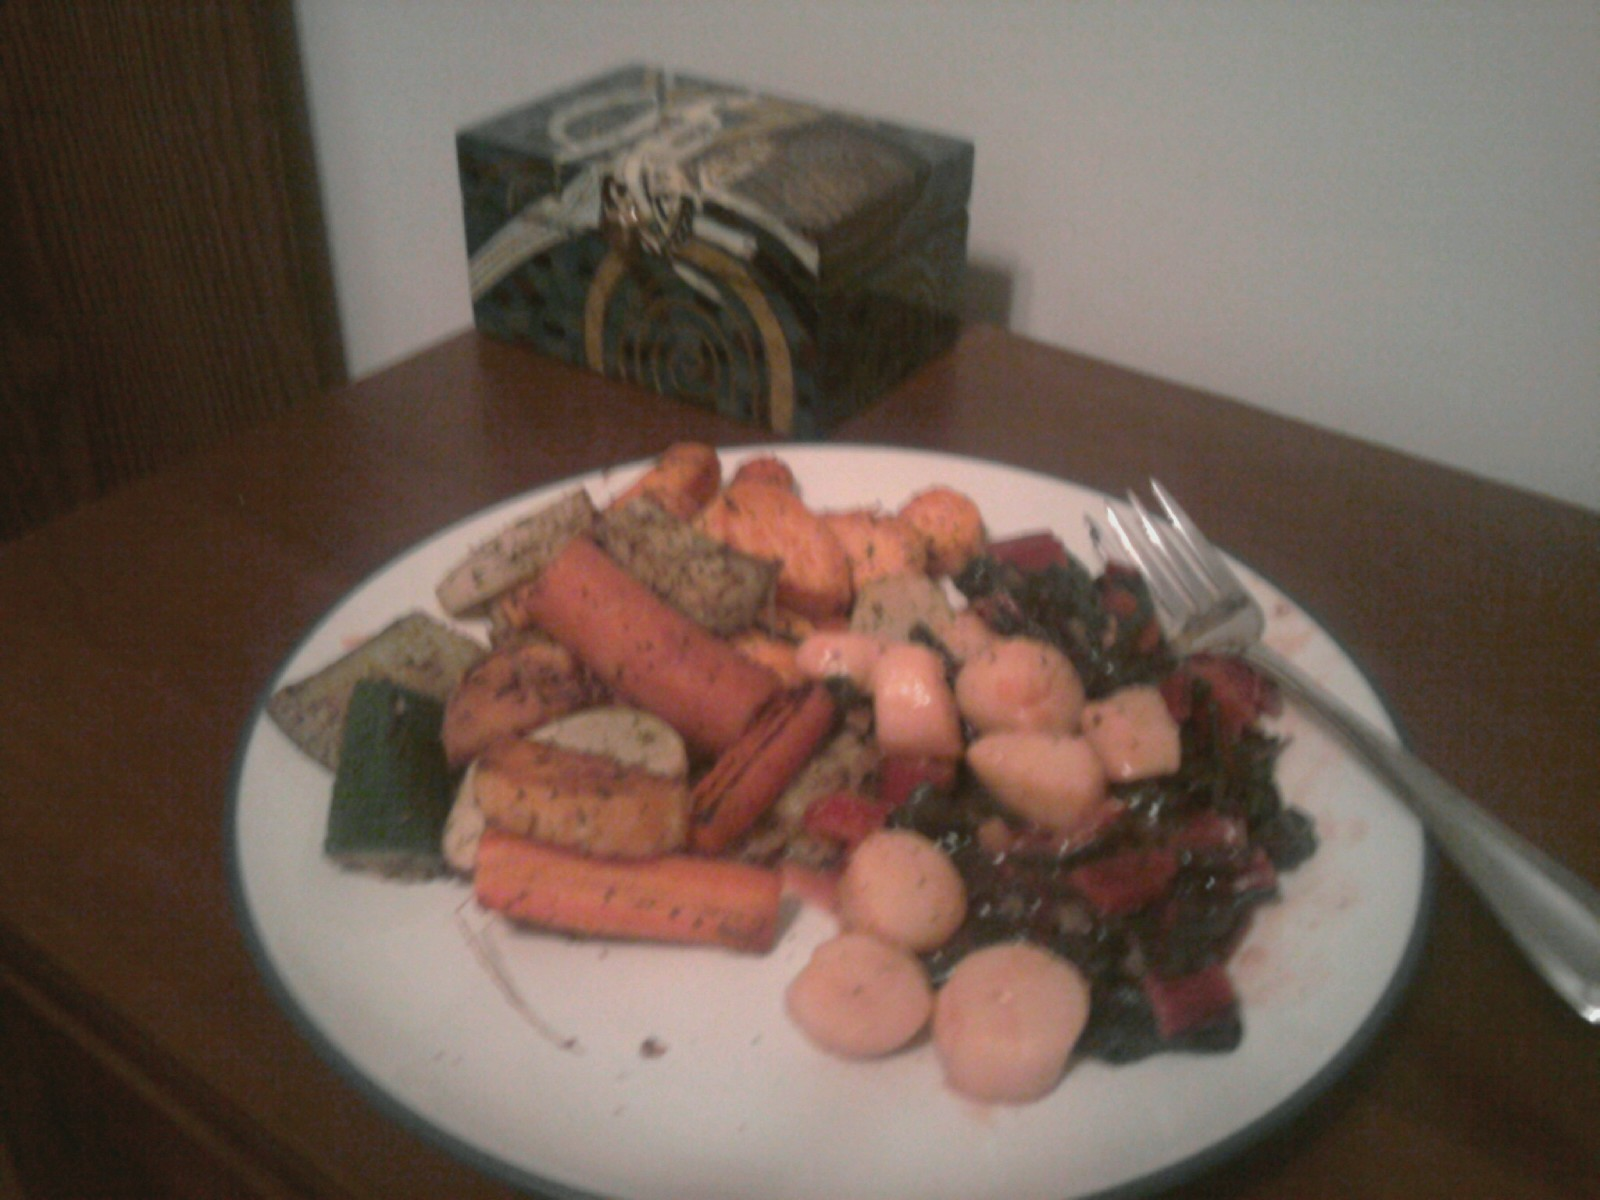 mms picture   Roasted Veggies and Sauteed Scallops with Swiss chard